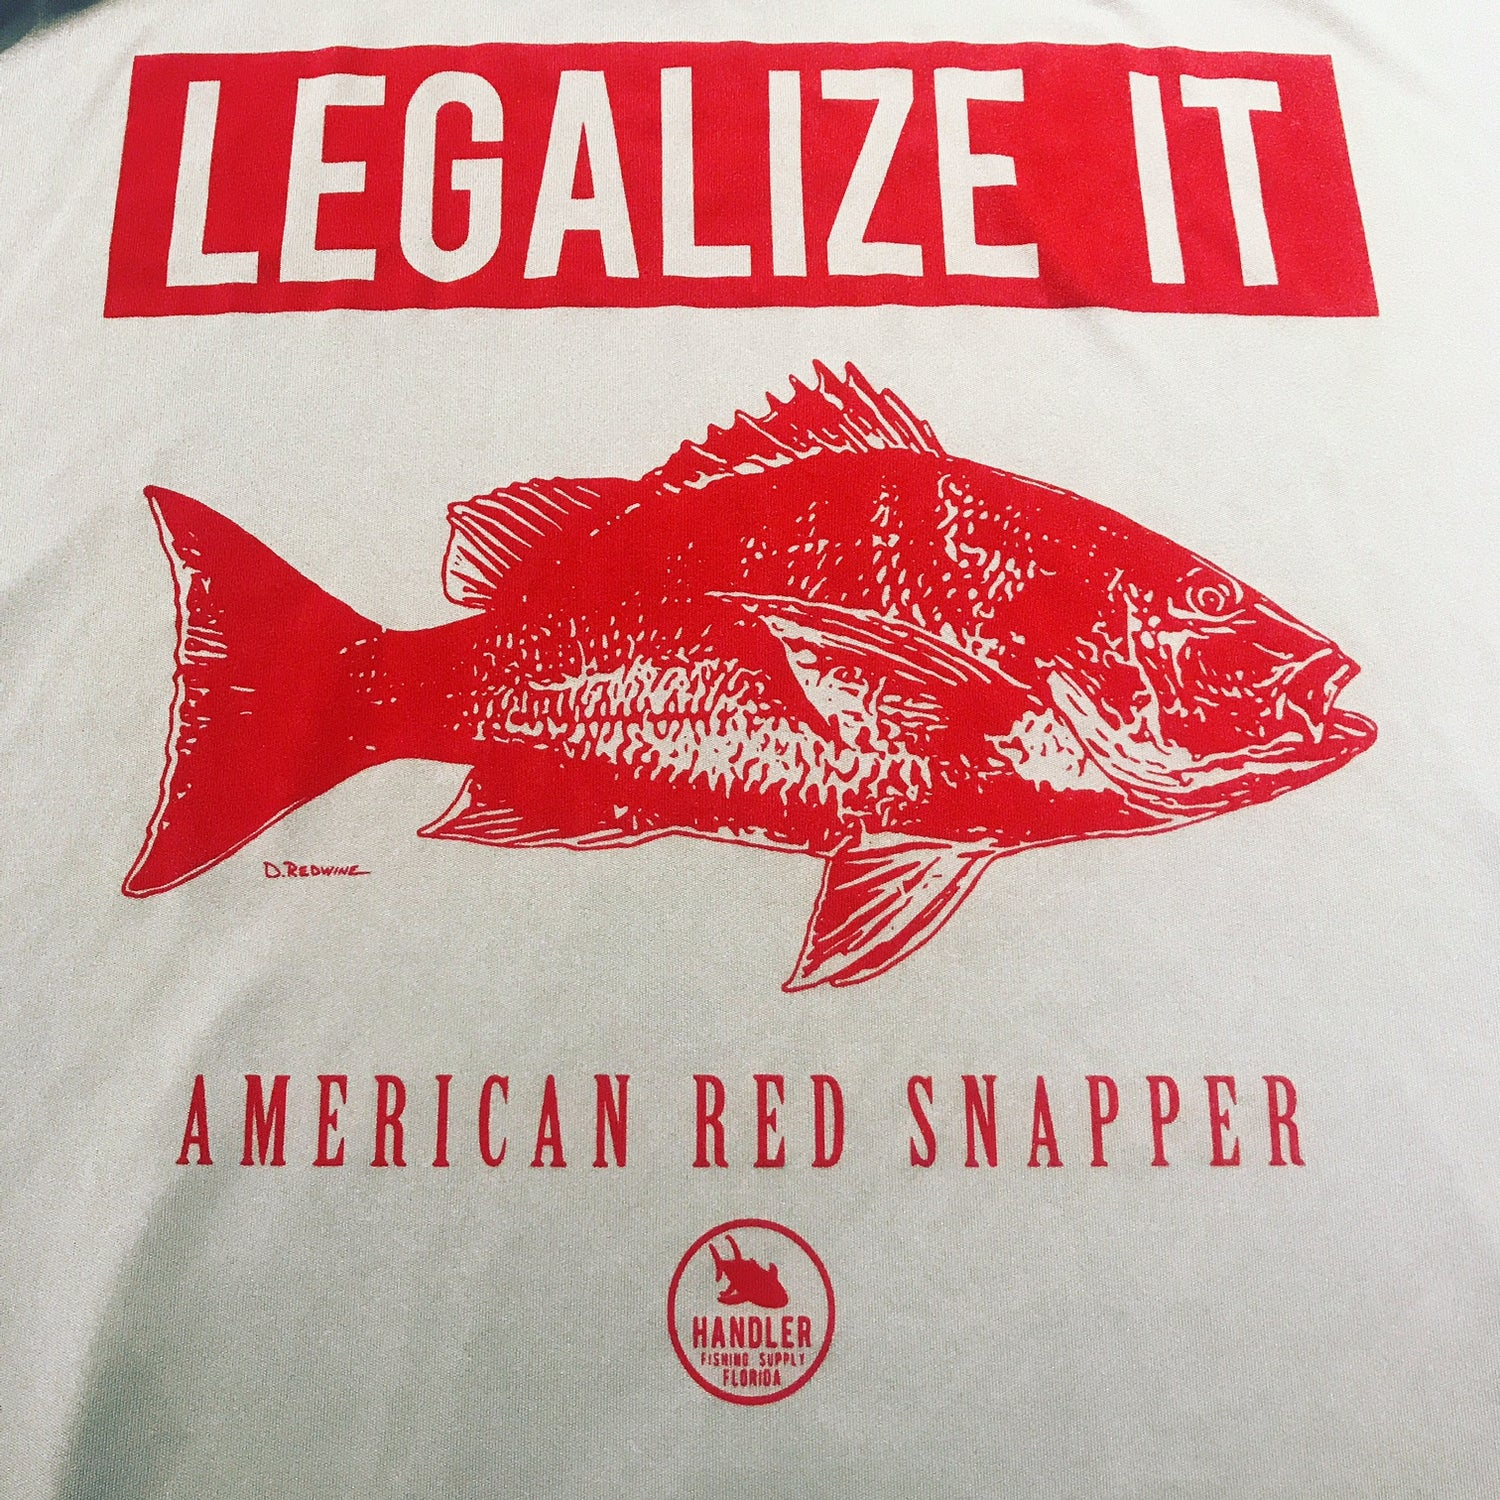 Image of 'Legalize It' Red Snapper Shirt (ICE GRAY-Short Sleeve Cotton)